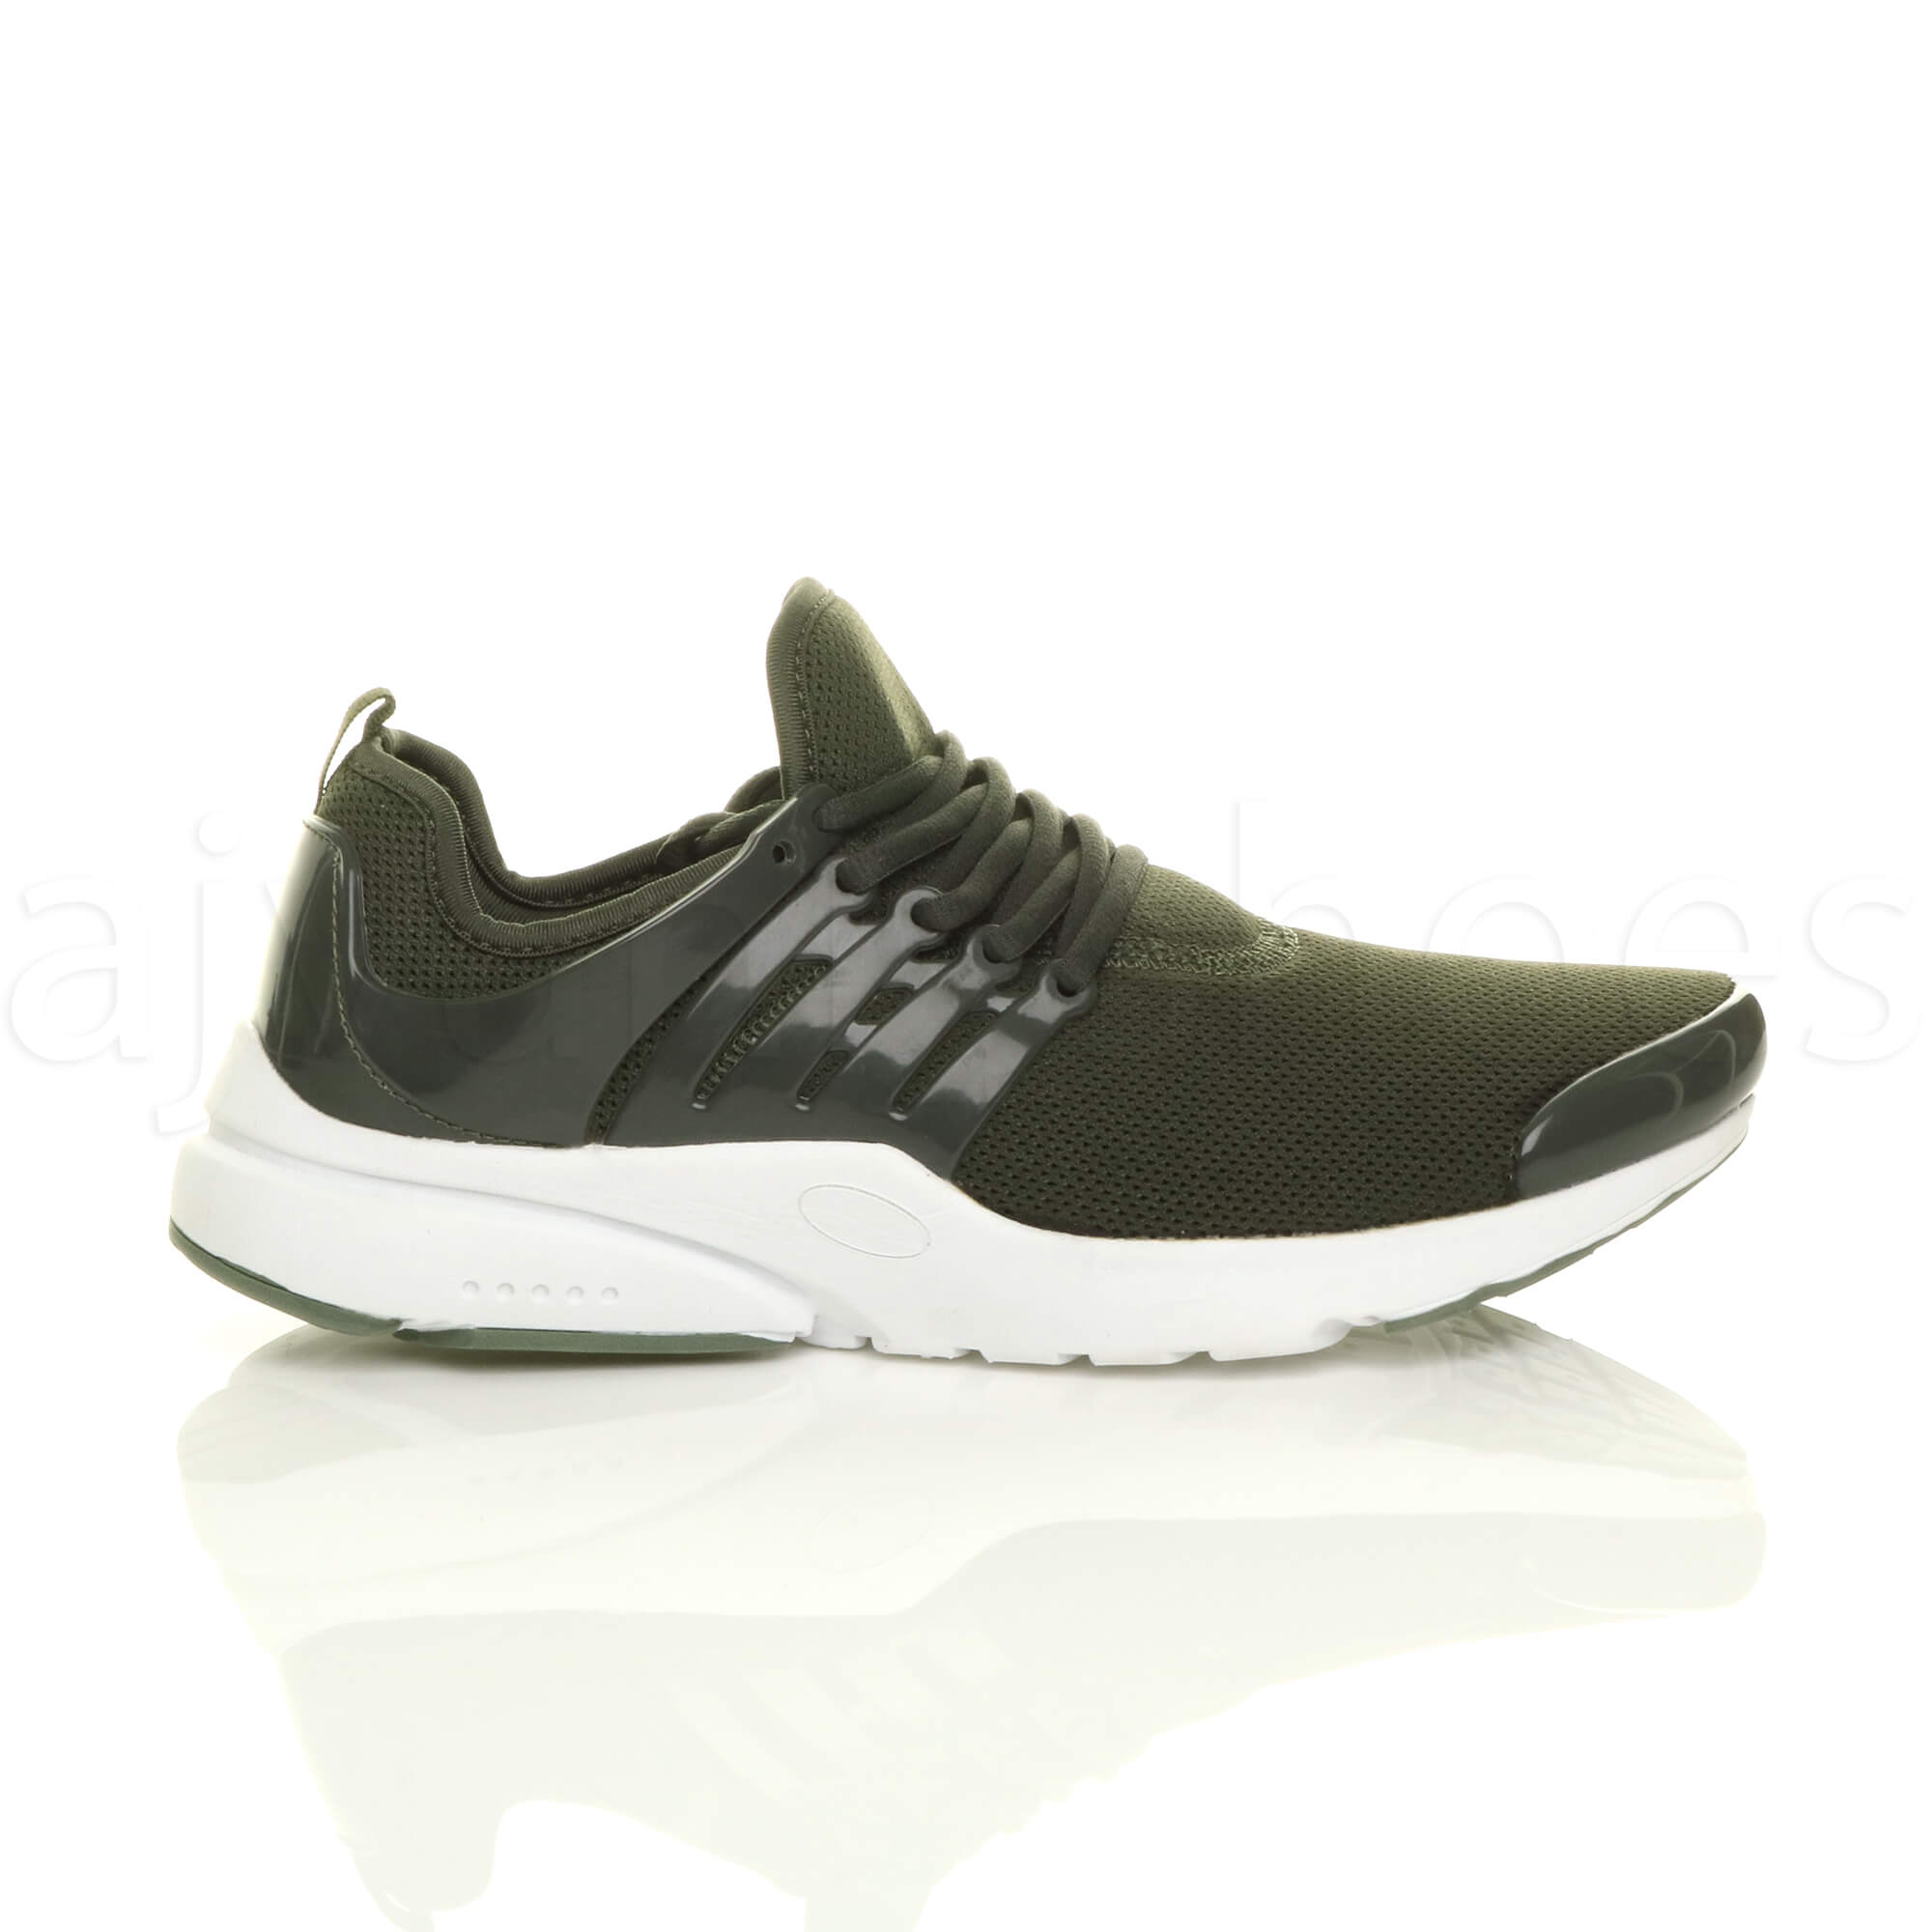 MENS-LACE-UP-SPORTS-GYM-FITNESS-RUNNING-FLEXIBLE-TRAINERS-CASUAL-SNEAKERS-SIZE thumbnail 27